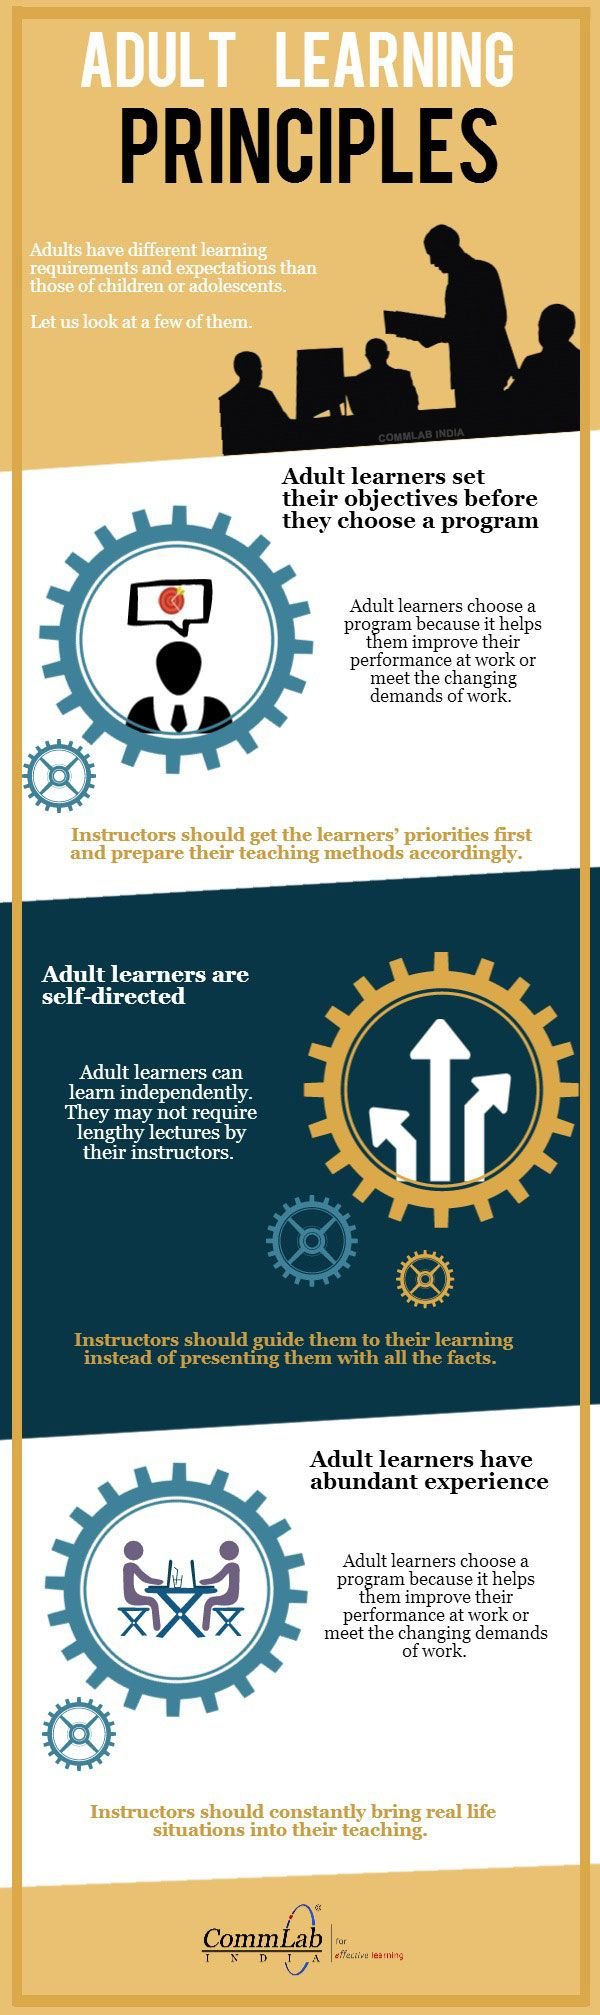 Adult Learning Principles Infographic - http://elearninginfographics.com/adult-learning-principles-infographic/